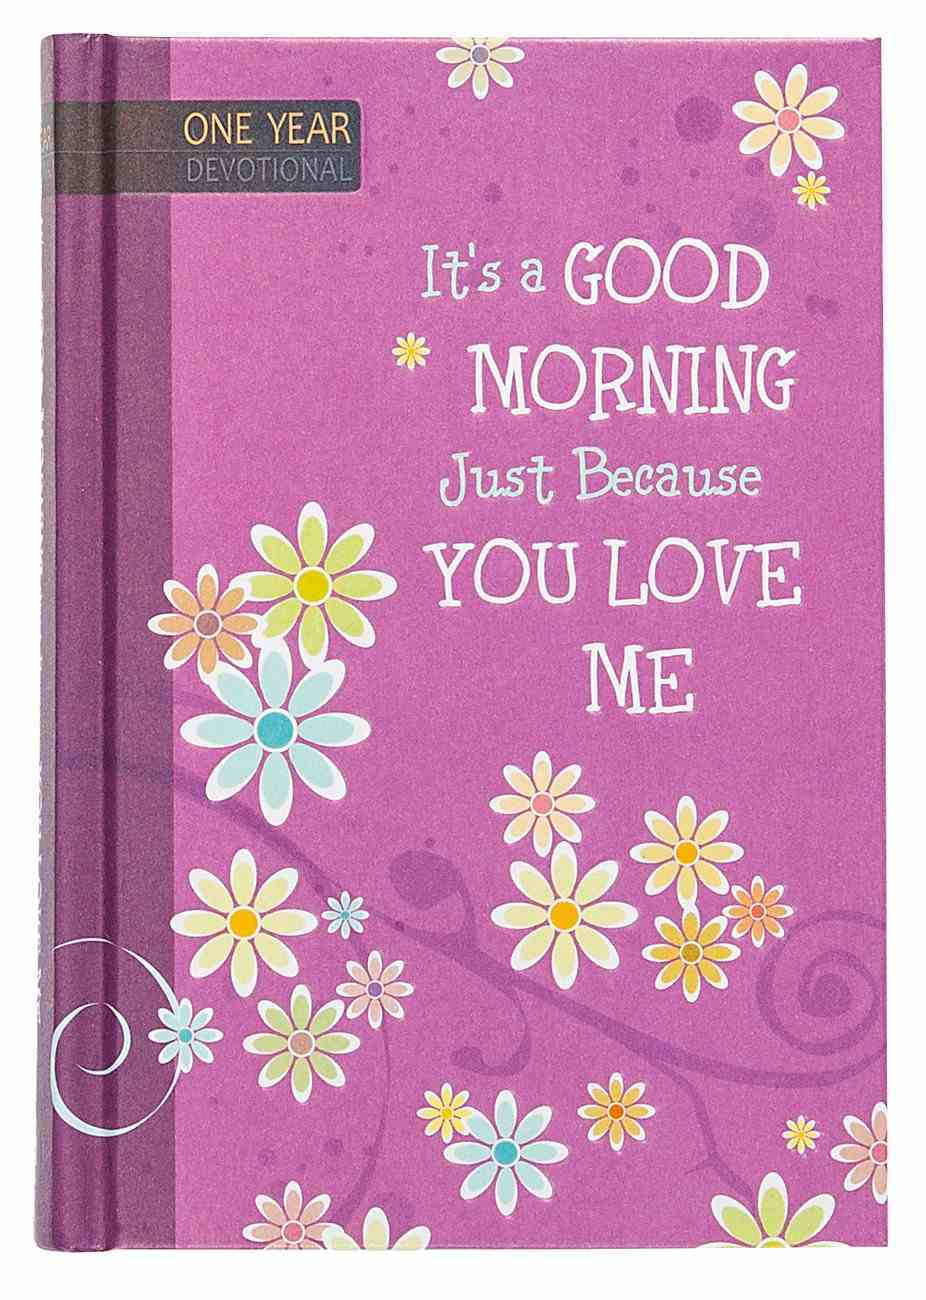 It's a Good Morning Just Because You Love Me (One Year Devotional) Hardback